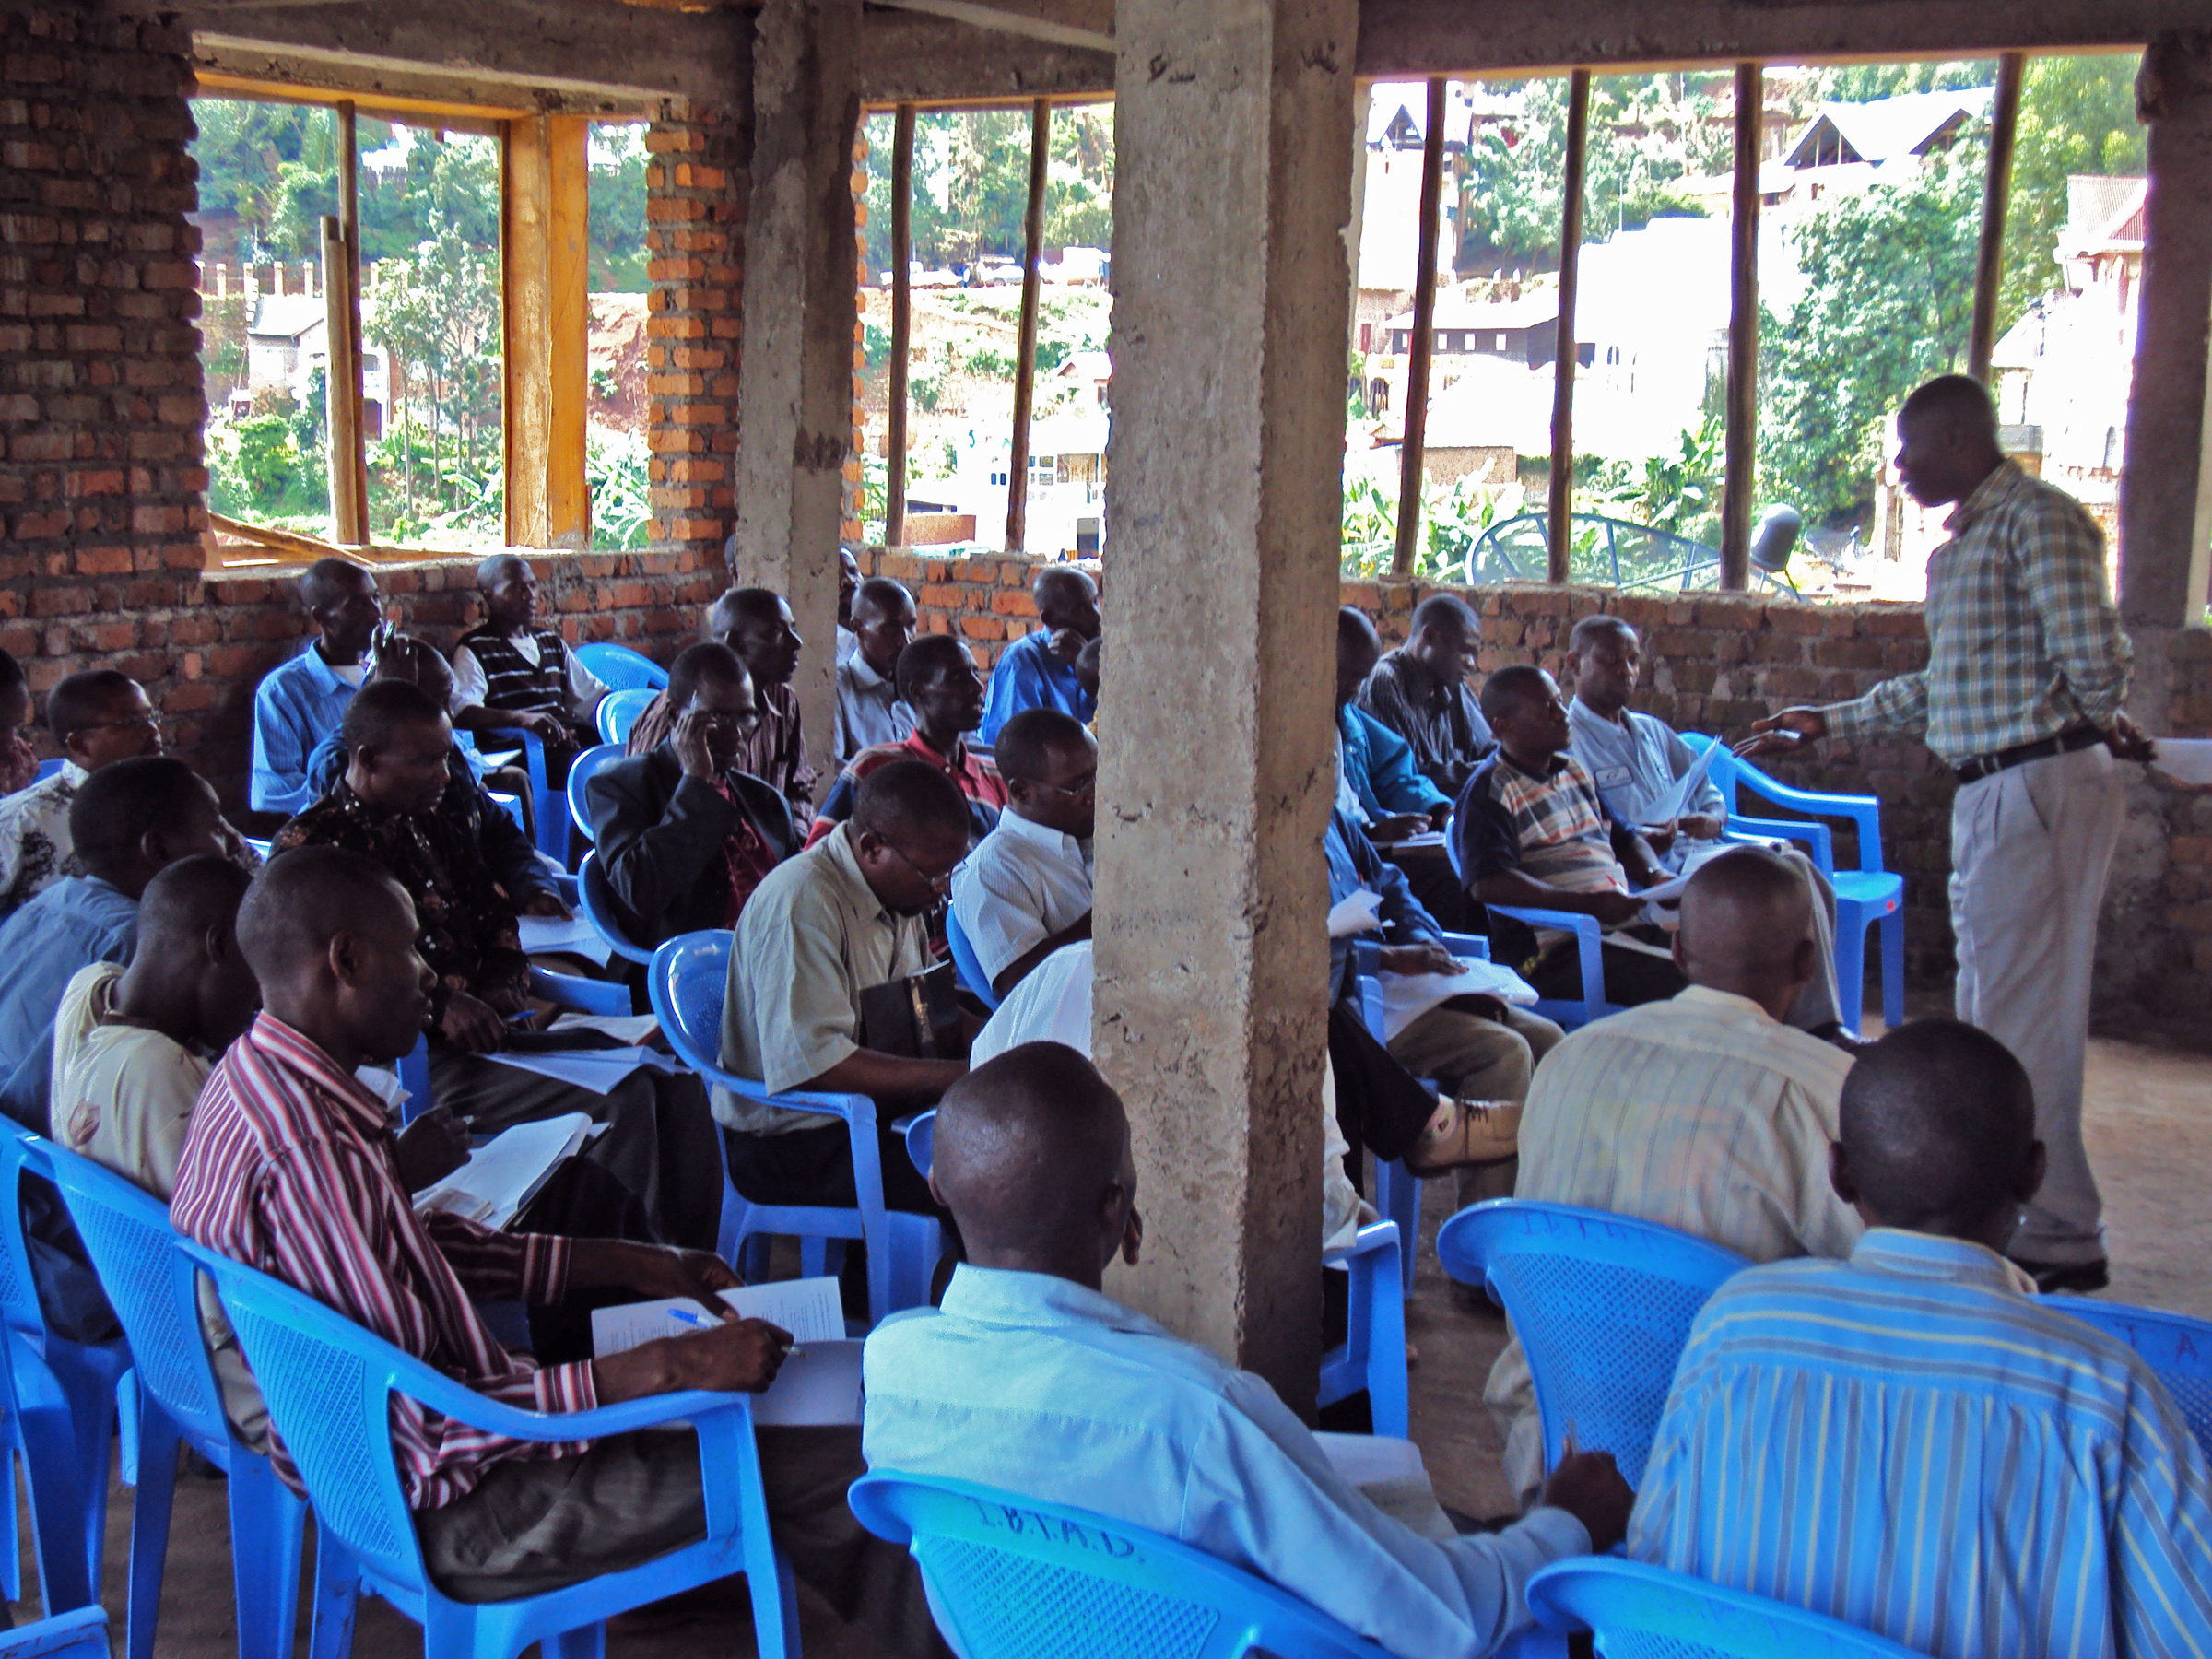 Bukavu Bible school extension class in session